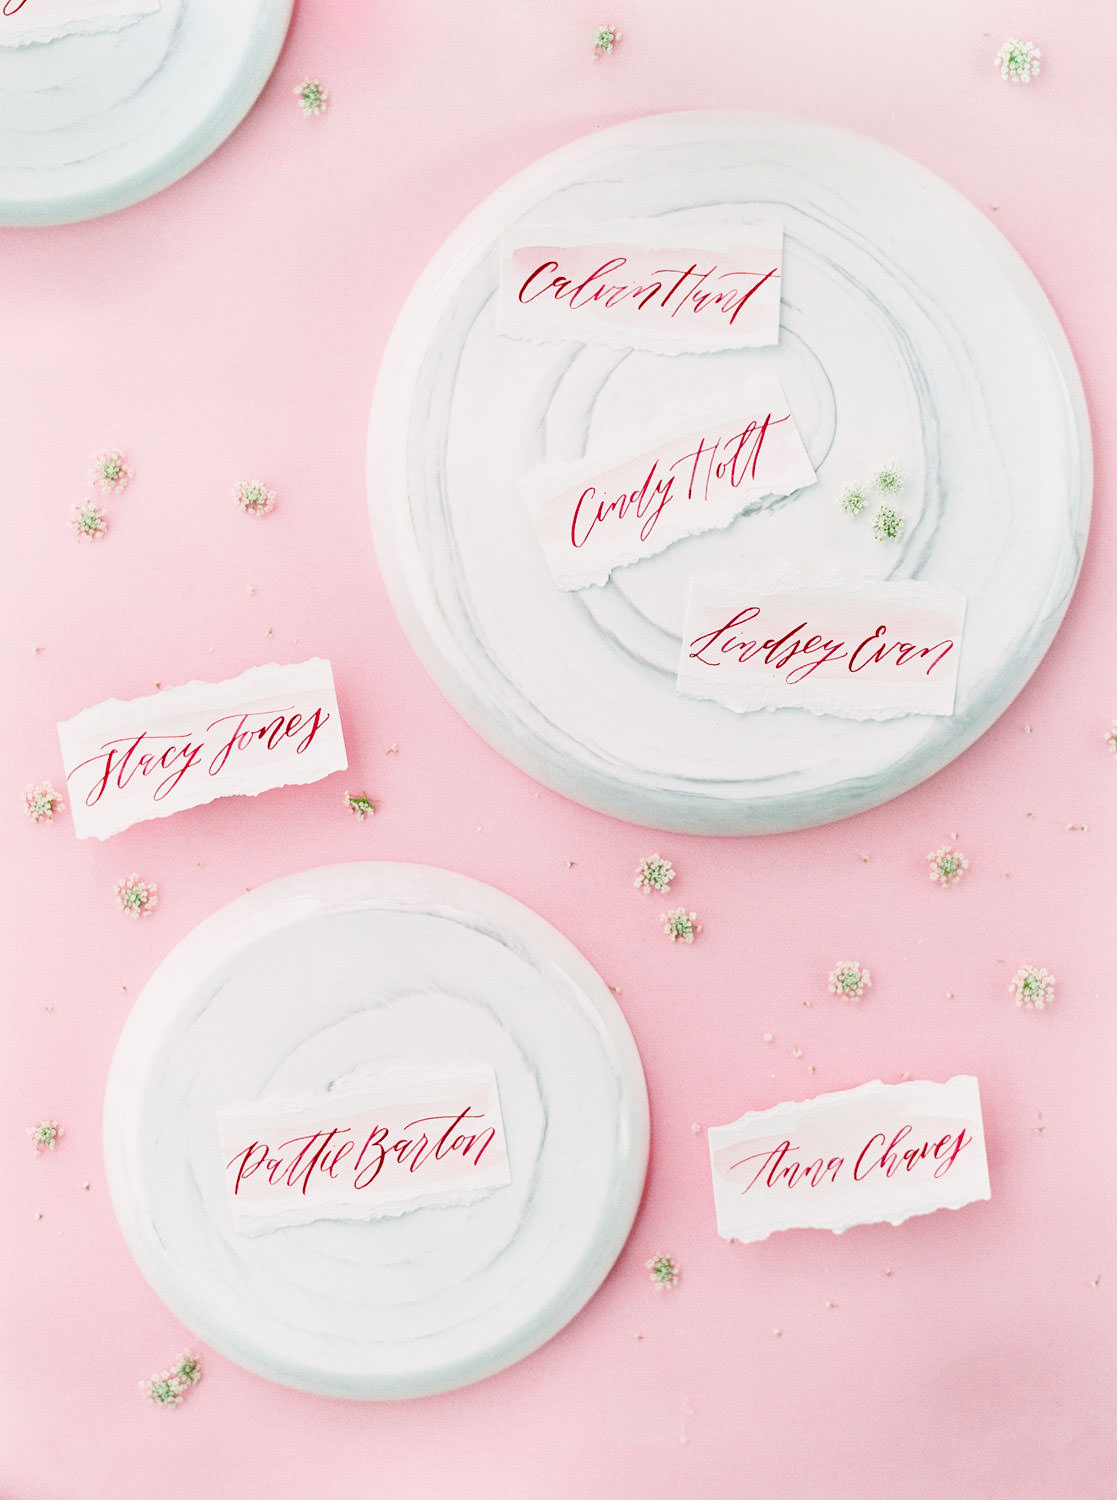 Escort cards deep pink calligraphy on hand torn paper on marble plates, Pink backdrop wedding editorial on medium format Contax 645 Fuji 400h film by Cavin Elizabeth Photography